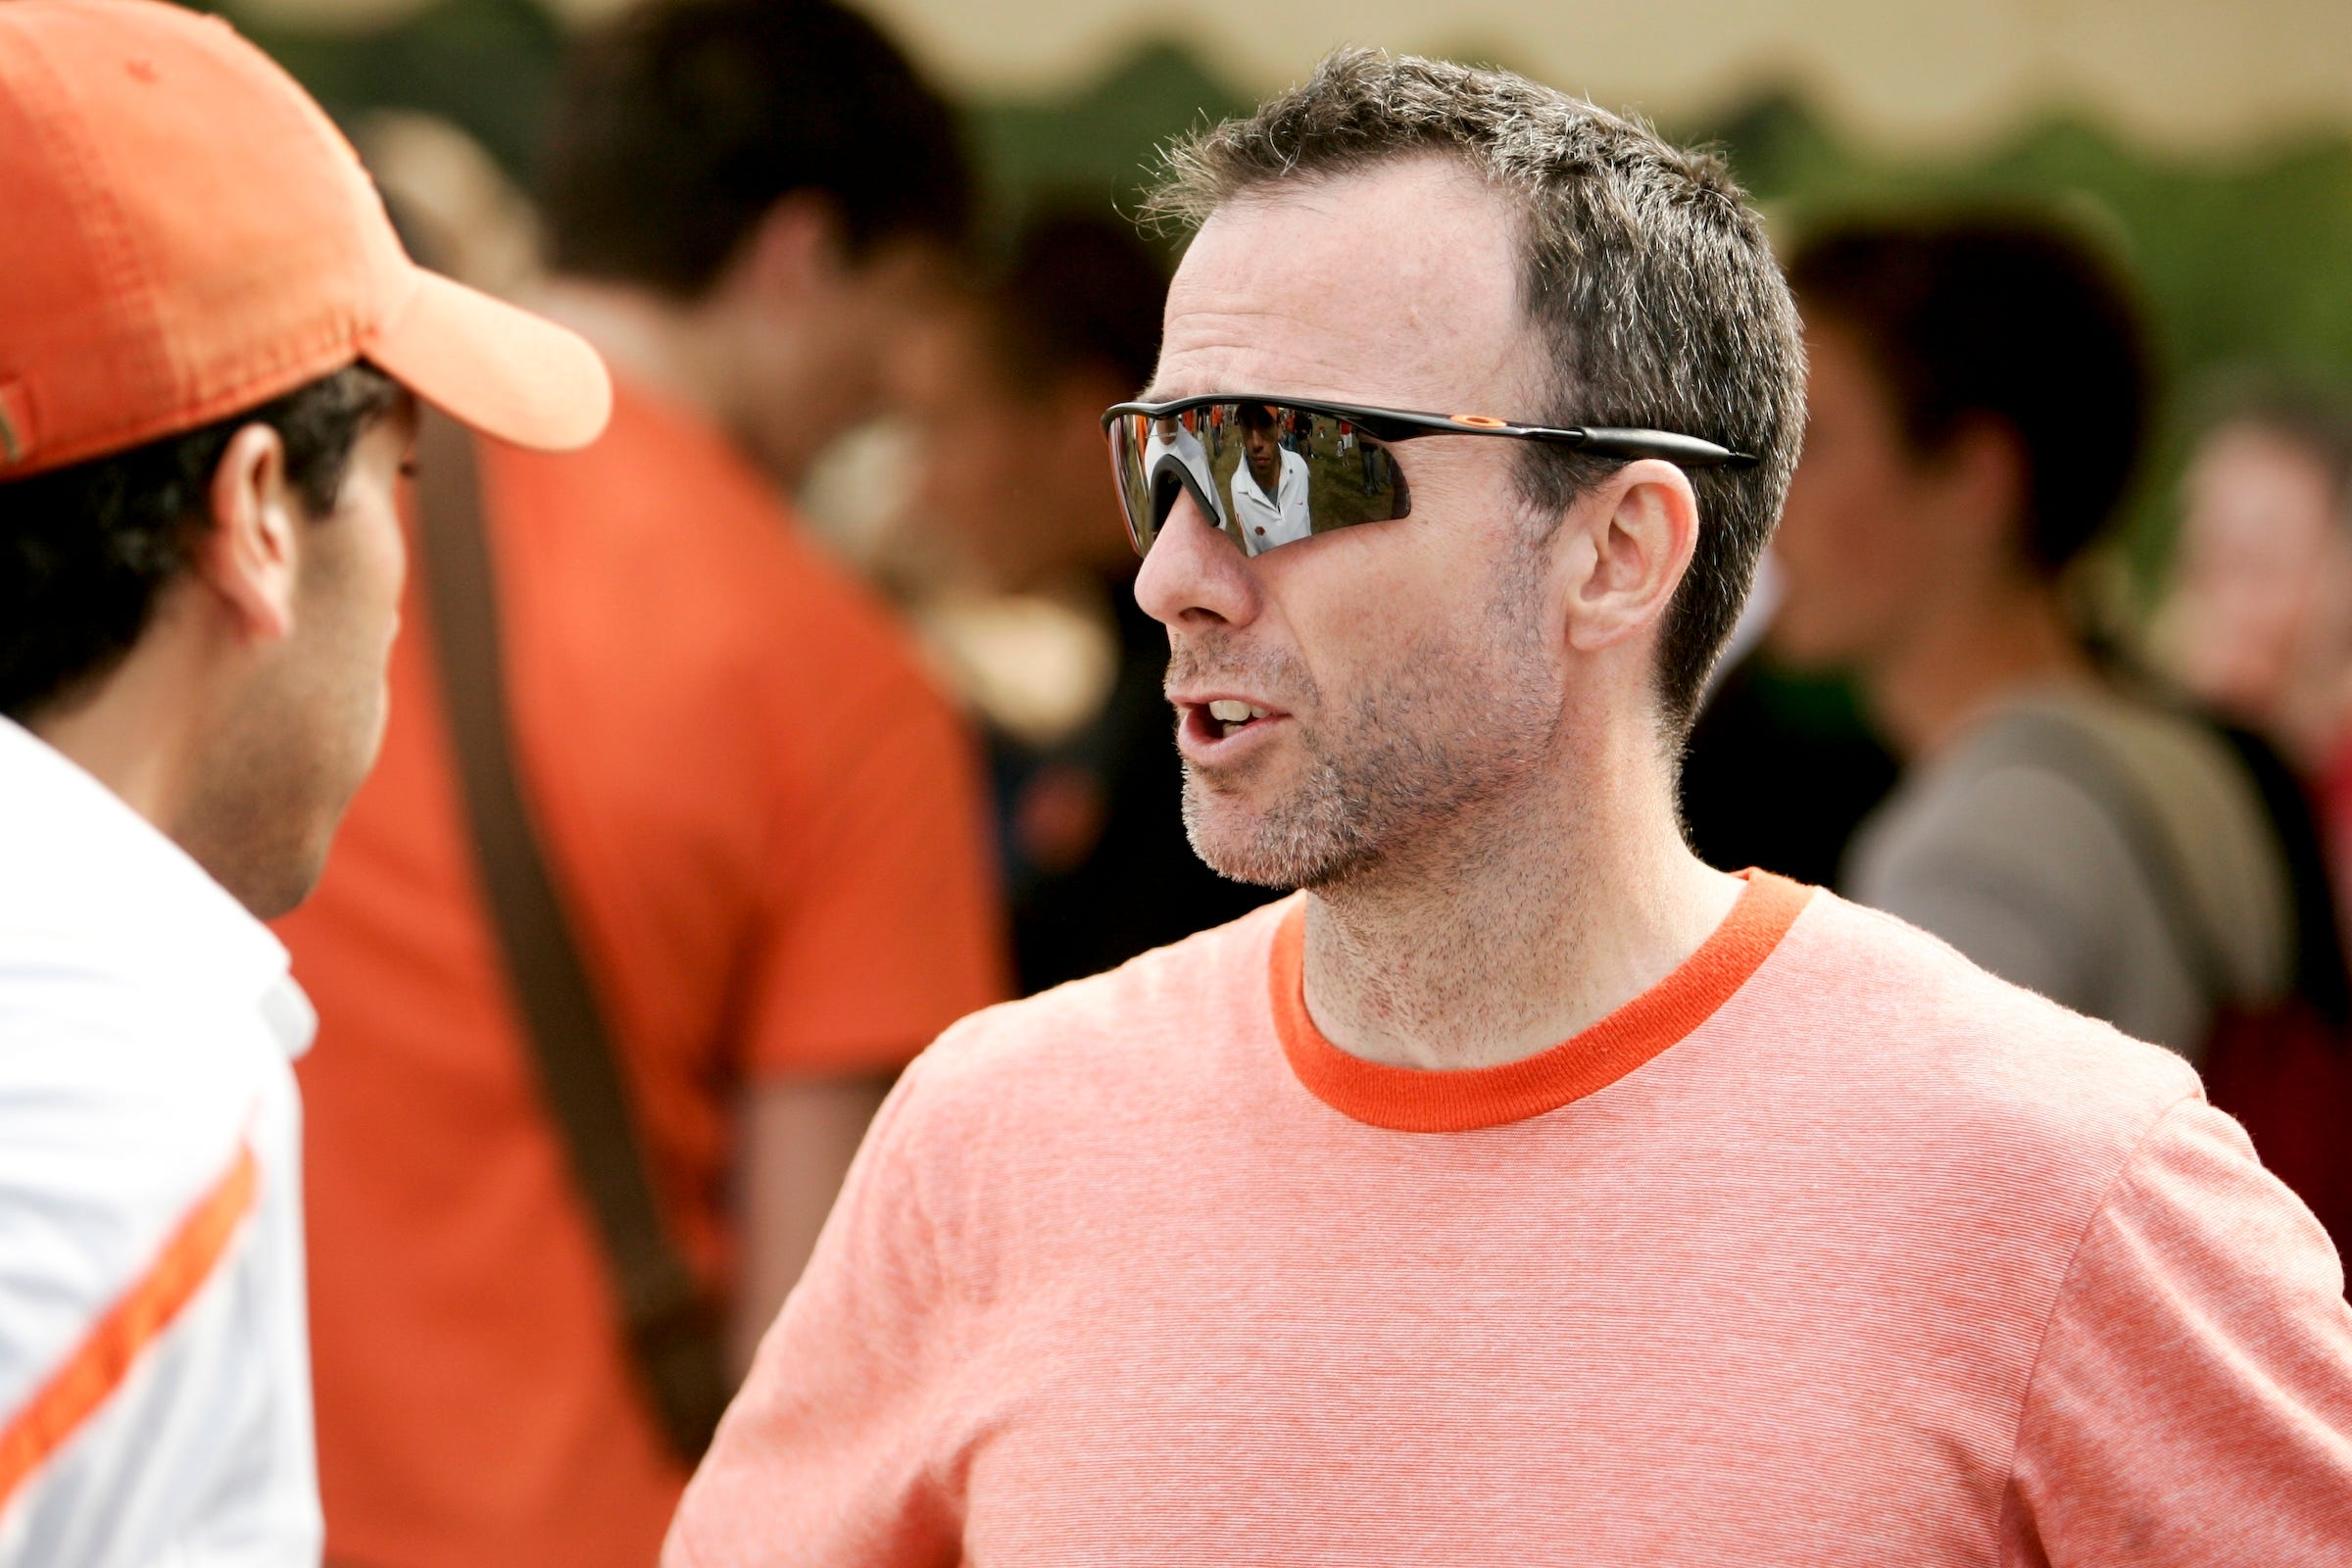 OSU Cross Country Coach Named National Men's Coach of the Year